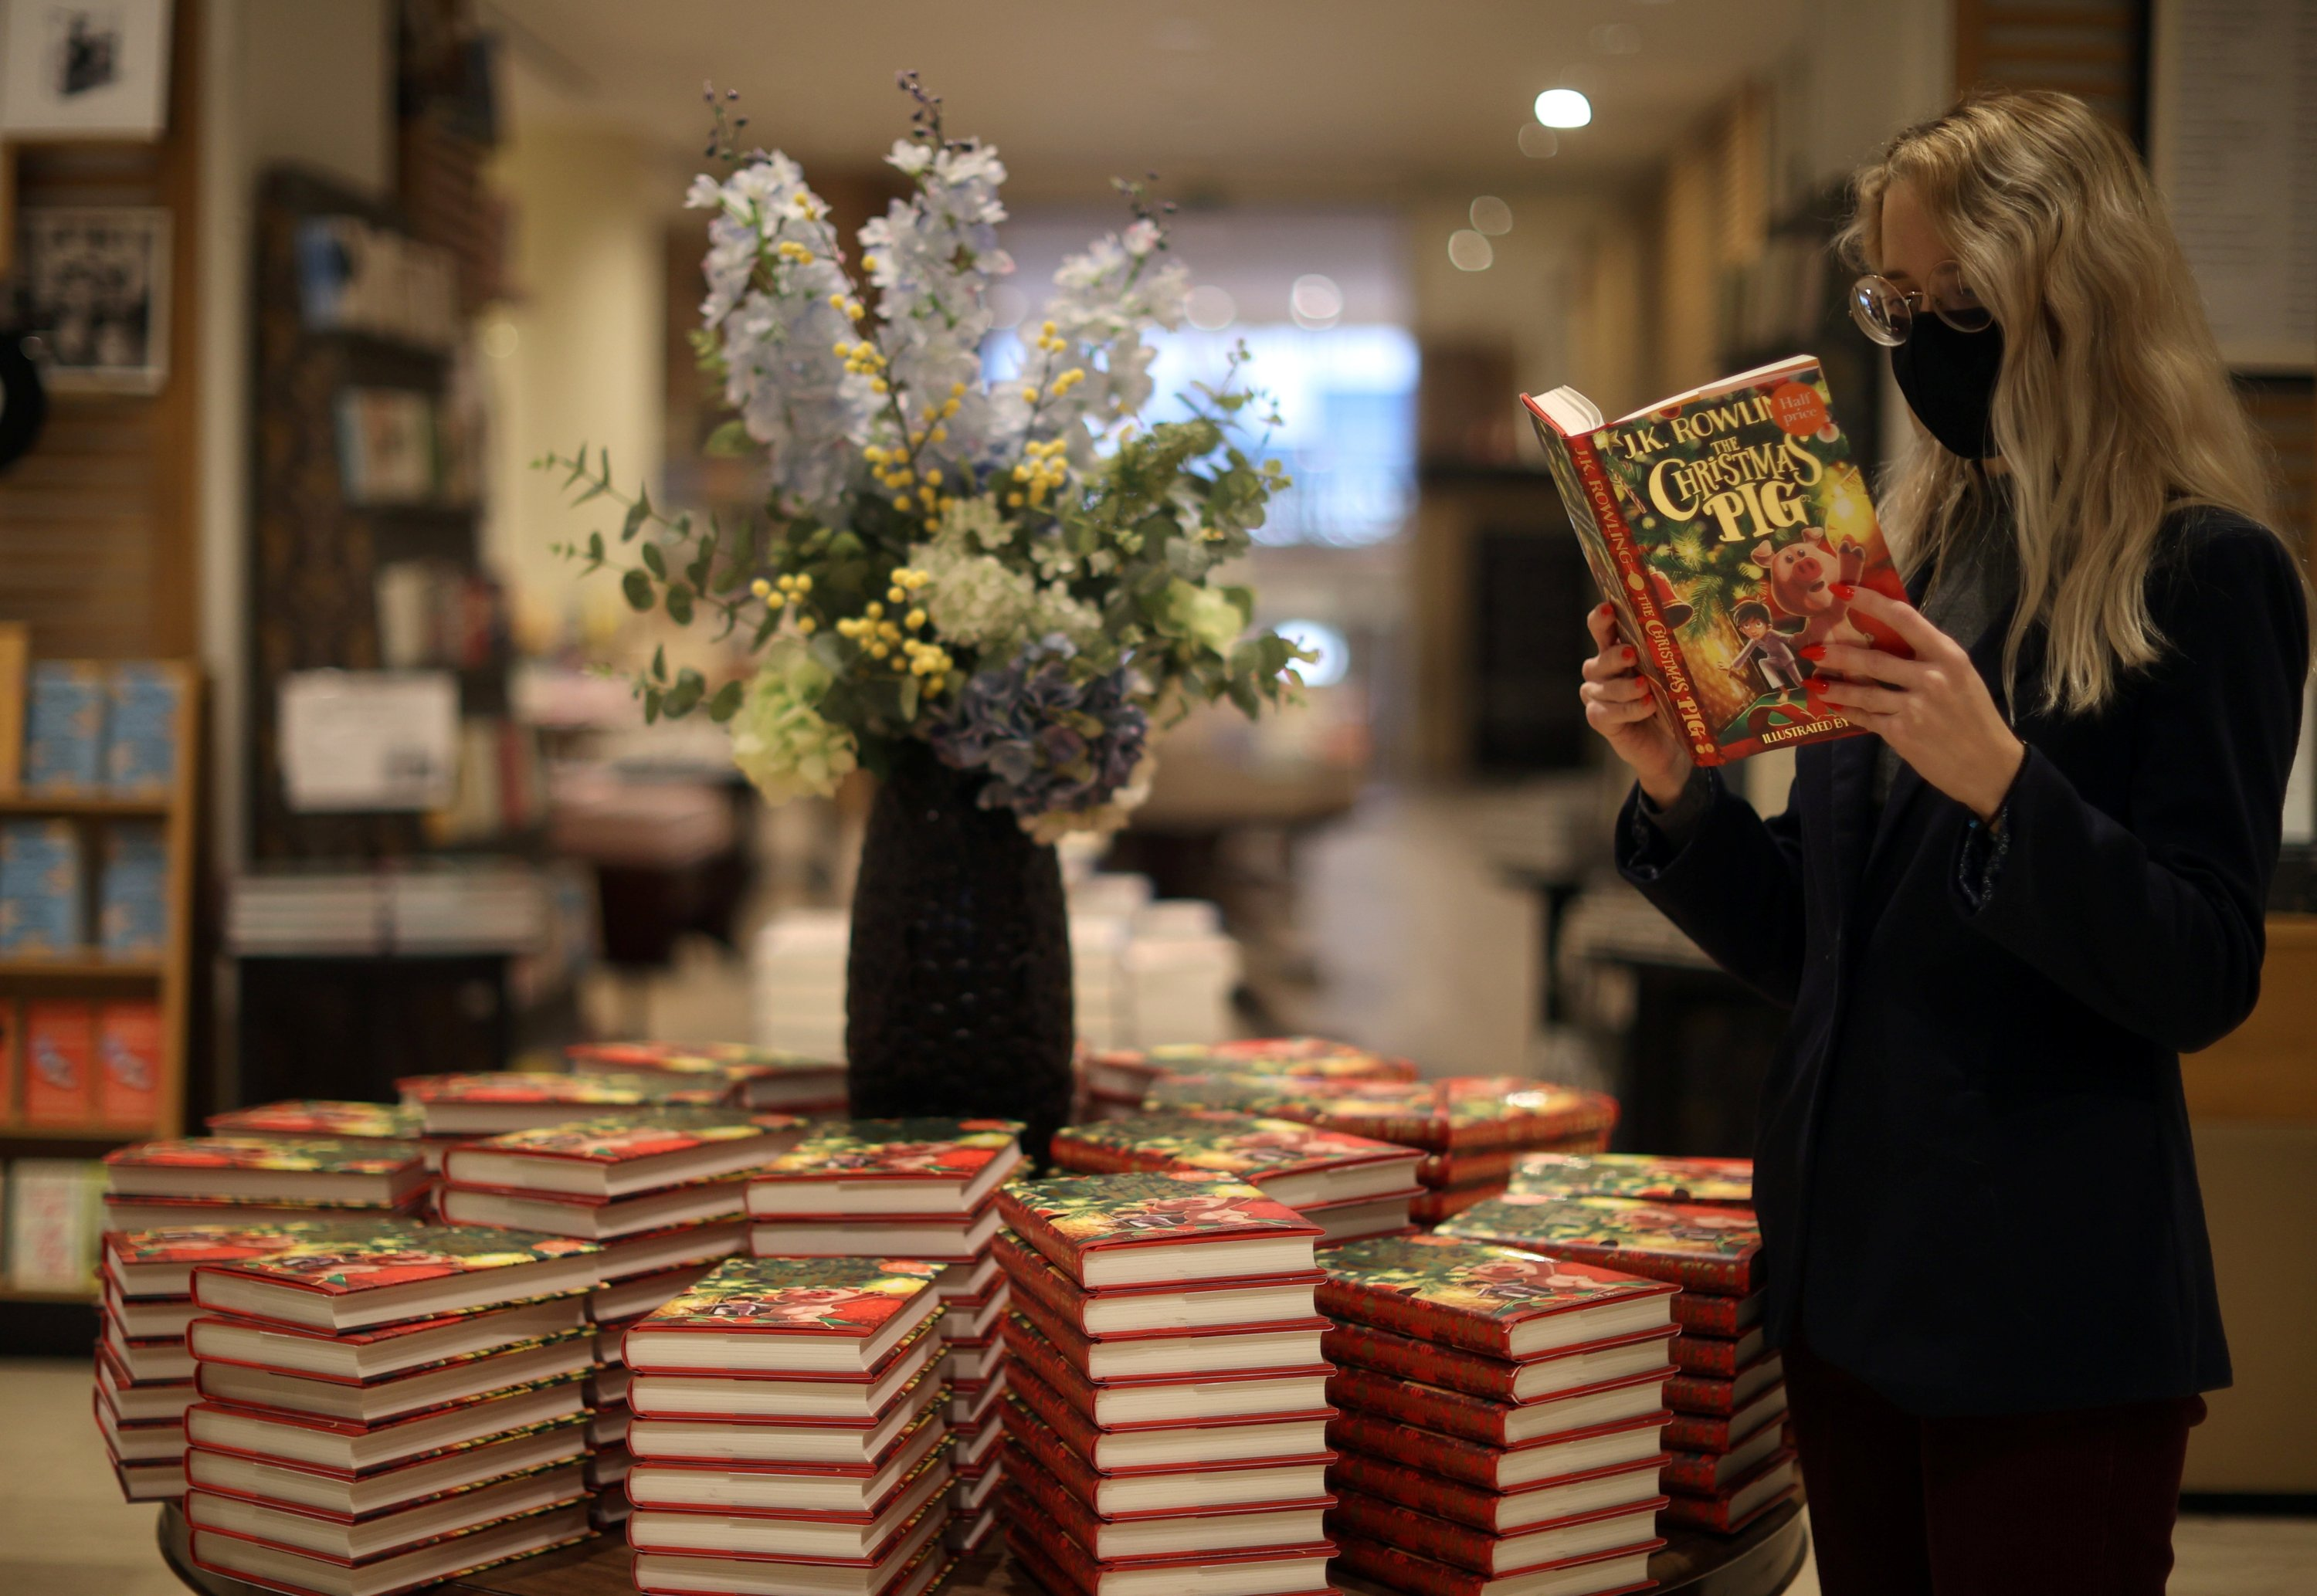 A shop worker poses with a copy of 'The Christmas Pig', a children's book written by J. K. Rowling, at a Waterstones store in London, England, Oct. 12, 2021. (REUTERS Photo)